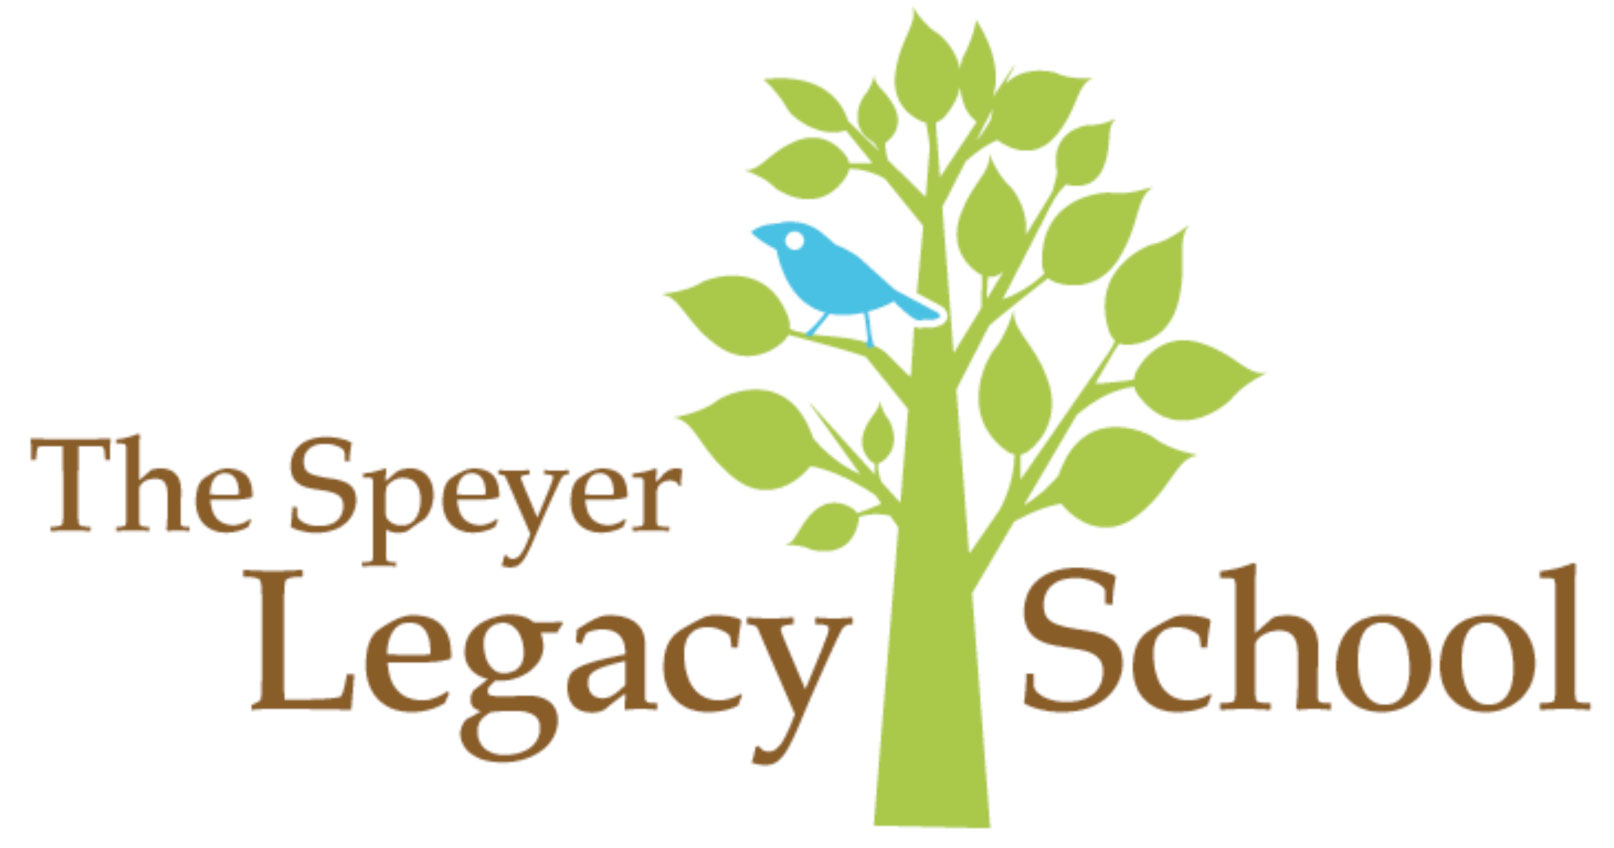 Speyer Legacy School (The)